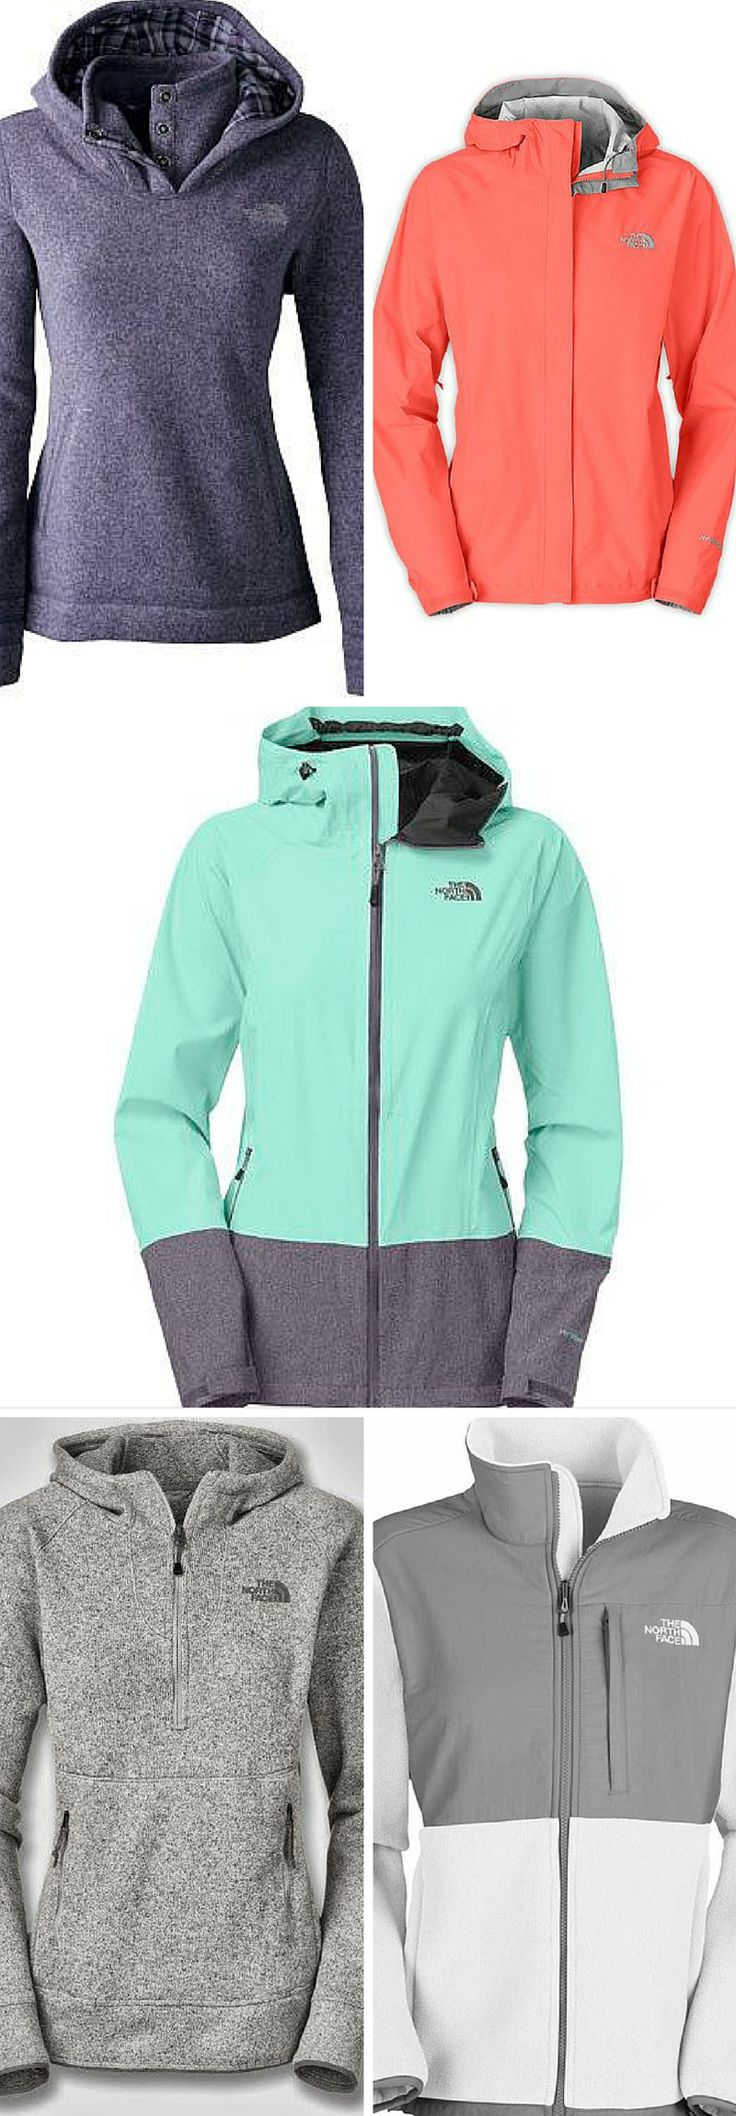 On a budget, but want to look on point? Now you can! Shop North Face and other brands at up to 70% off now. Click image to install the FREE APP! Poshmark is featured in Good Morning America & Cosmopolitan.